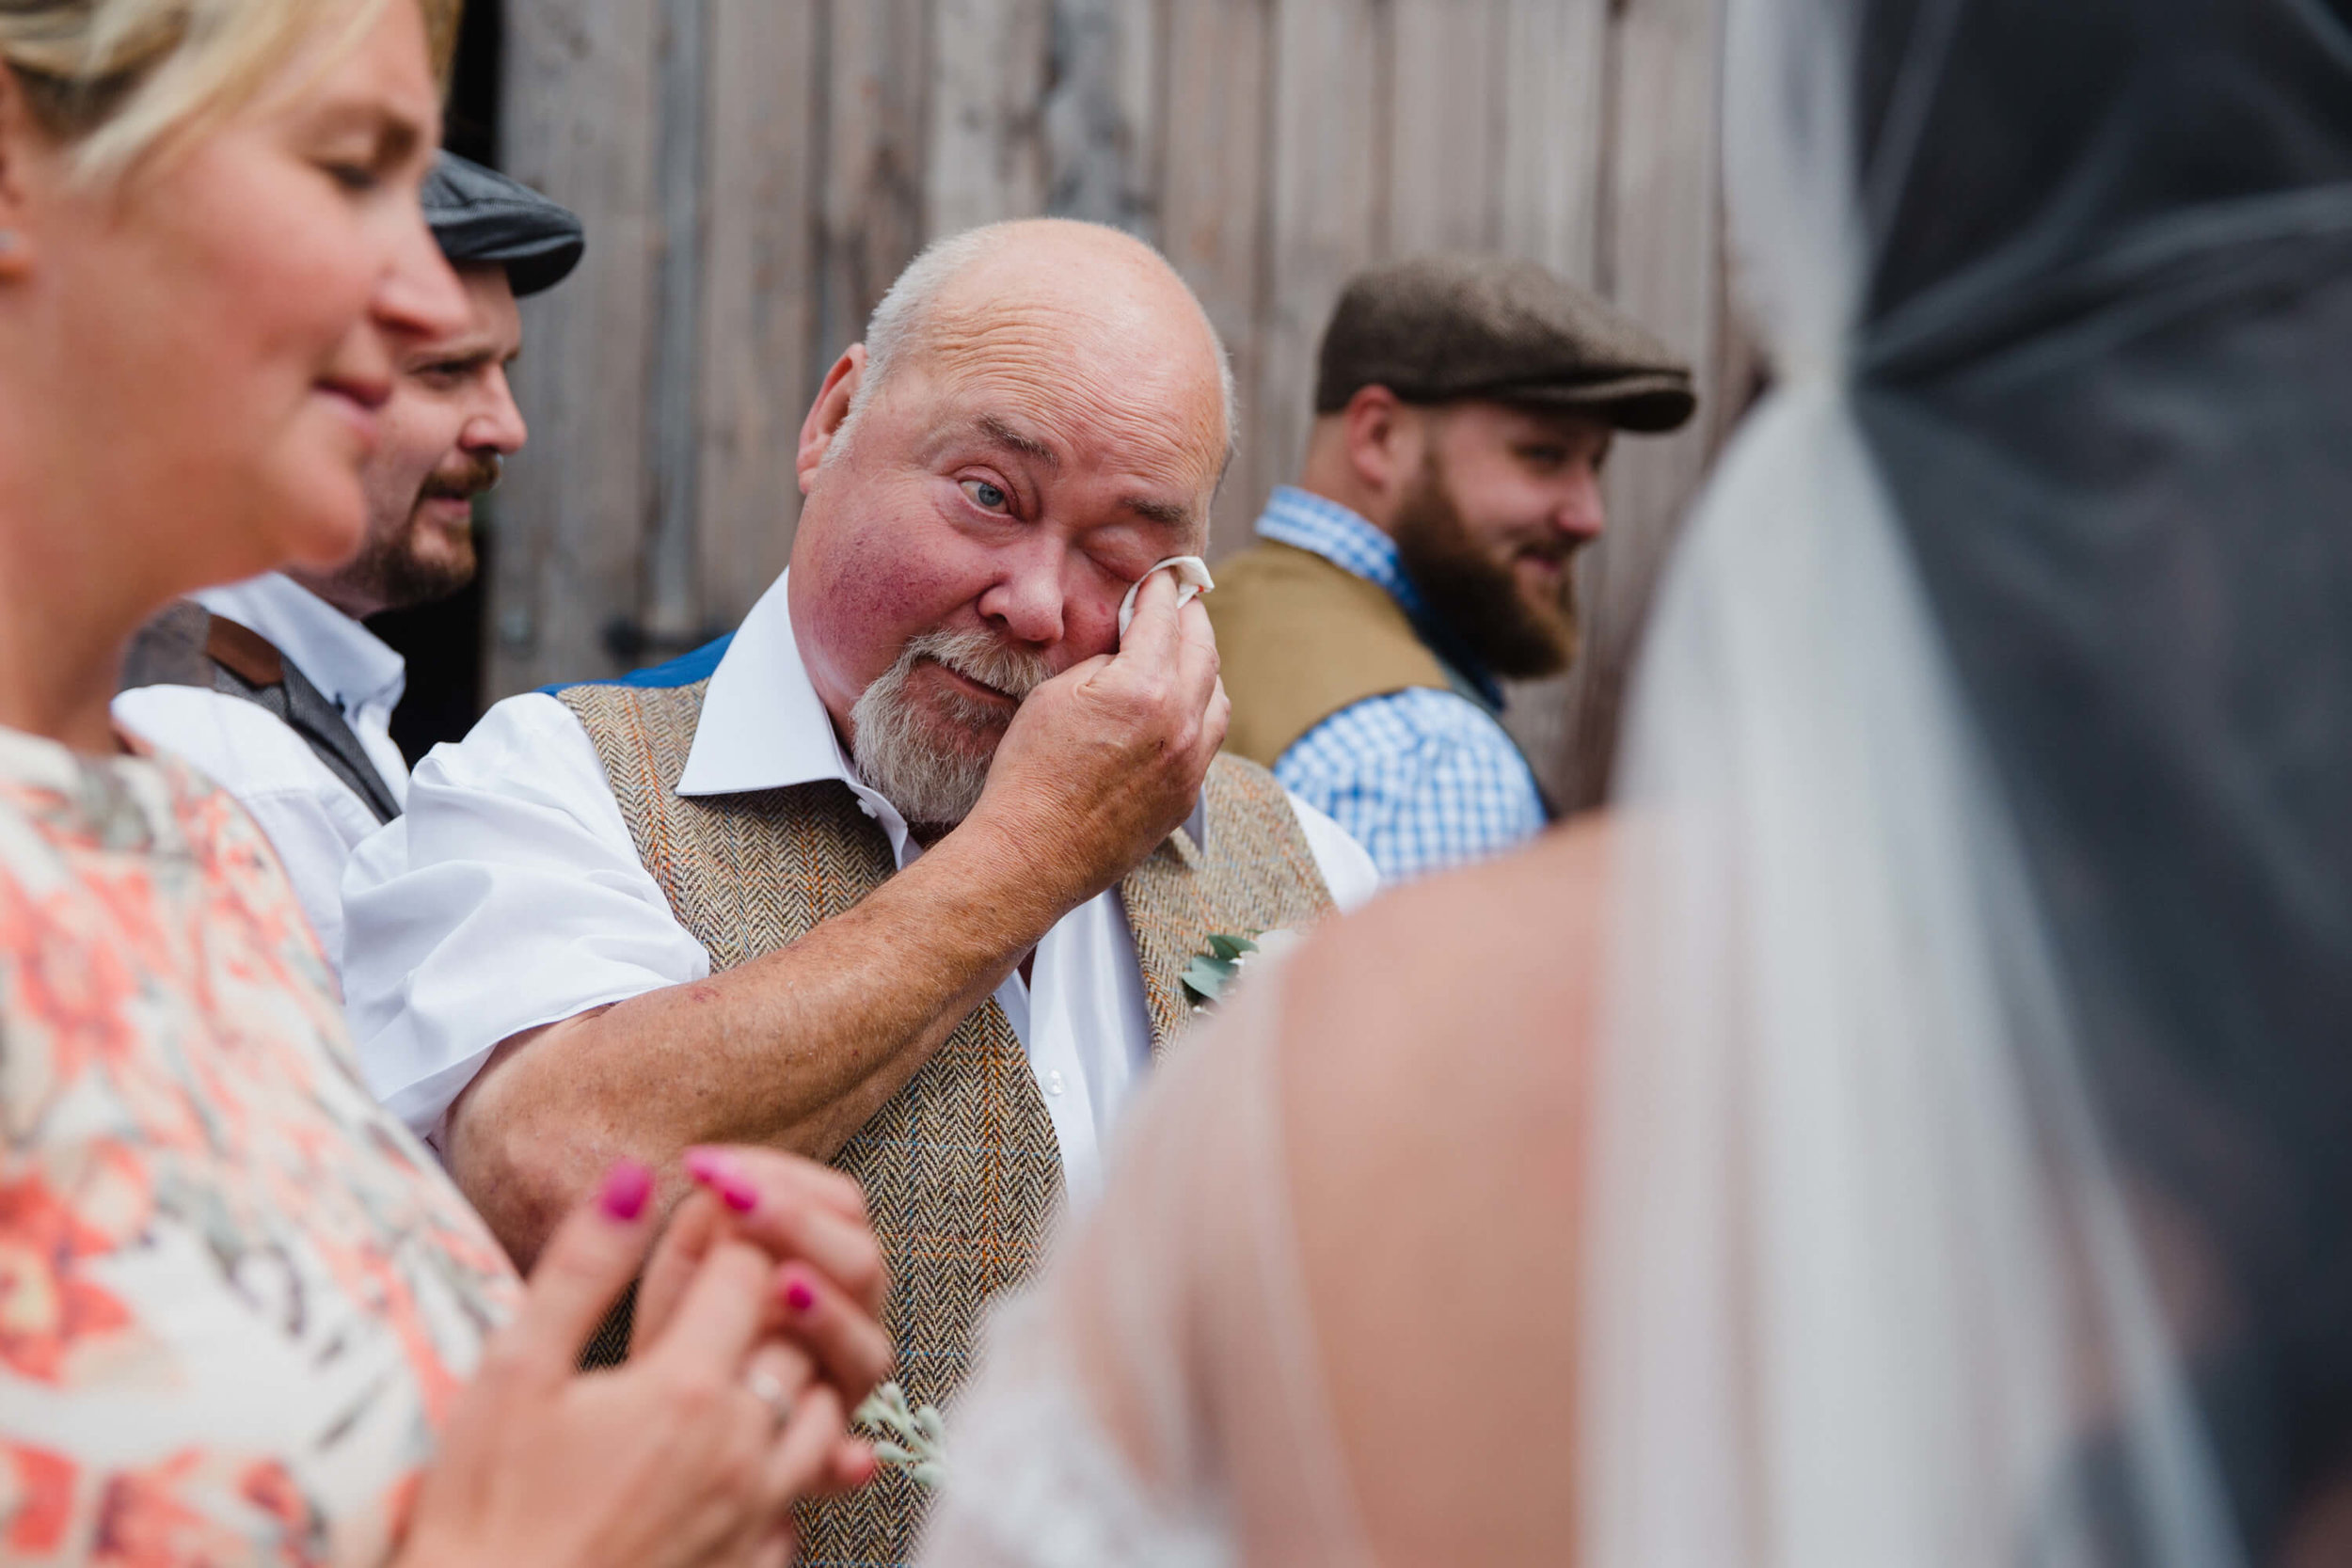 father of bride wipes away tear in natural moment caught on camera